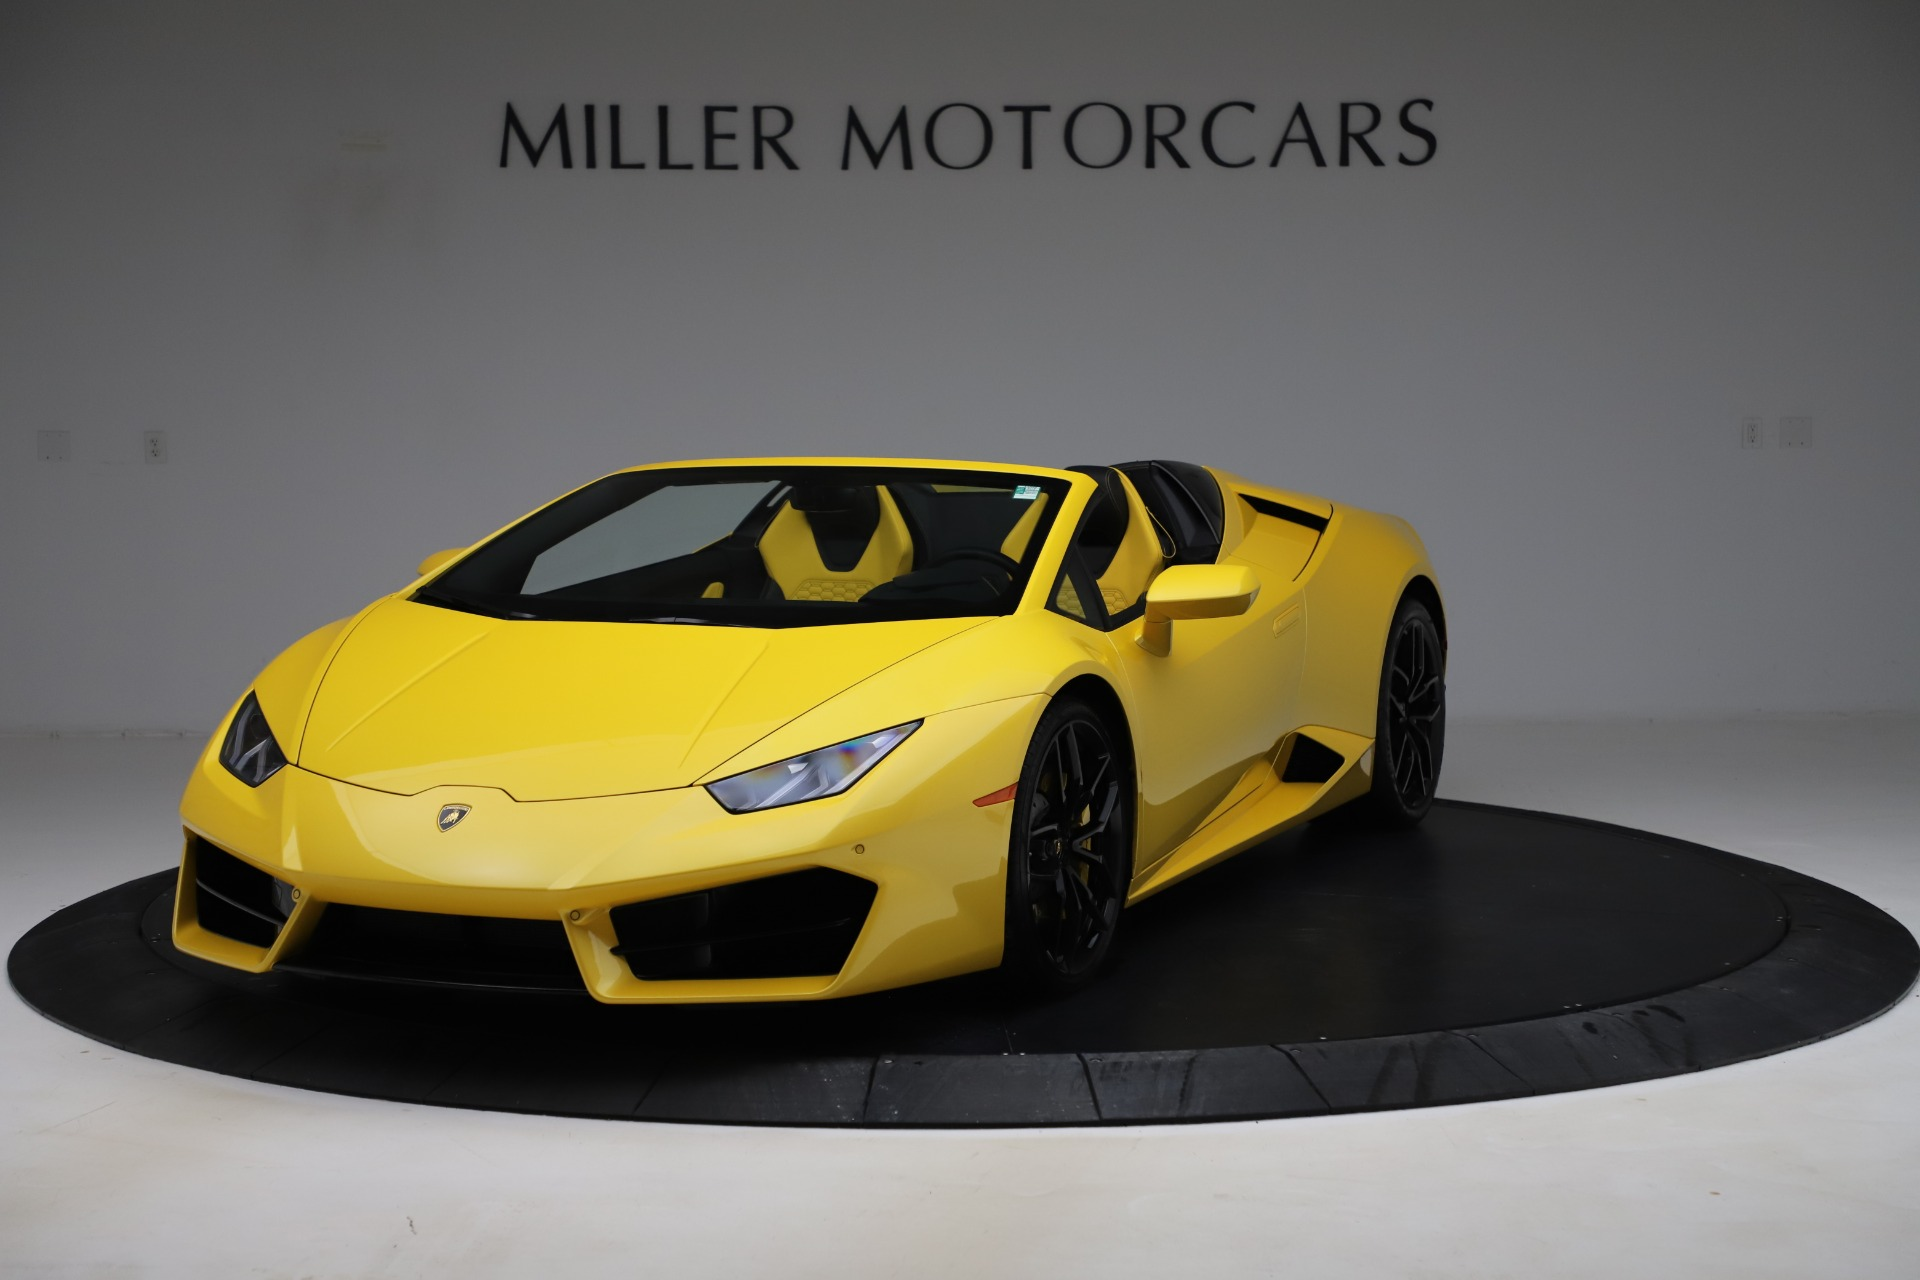 Used 2018 Lamborghini Huracan LP 580-2 Spyder for sale $203,900 at McLaren Greenwich in Greenwich CT 06830 1